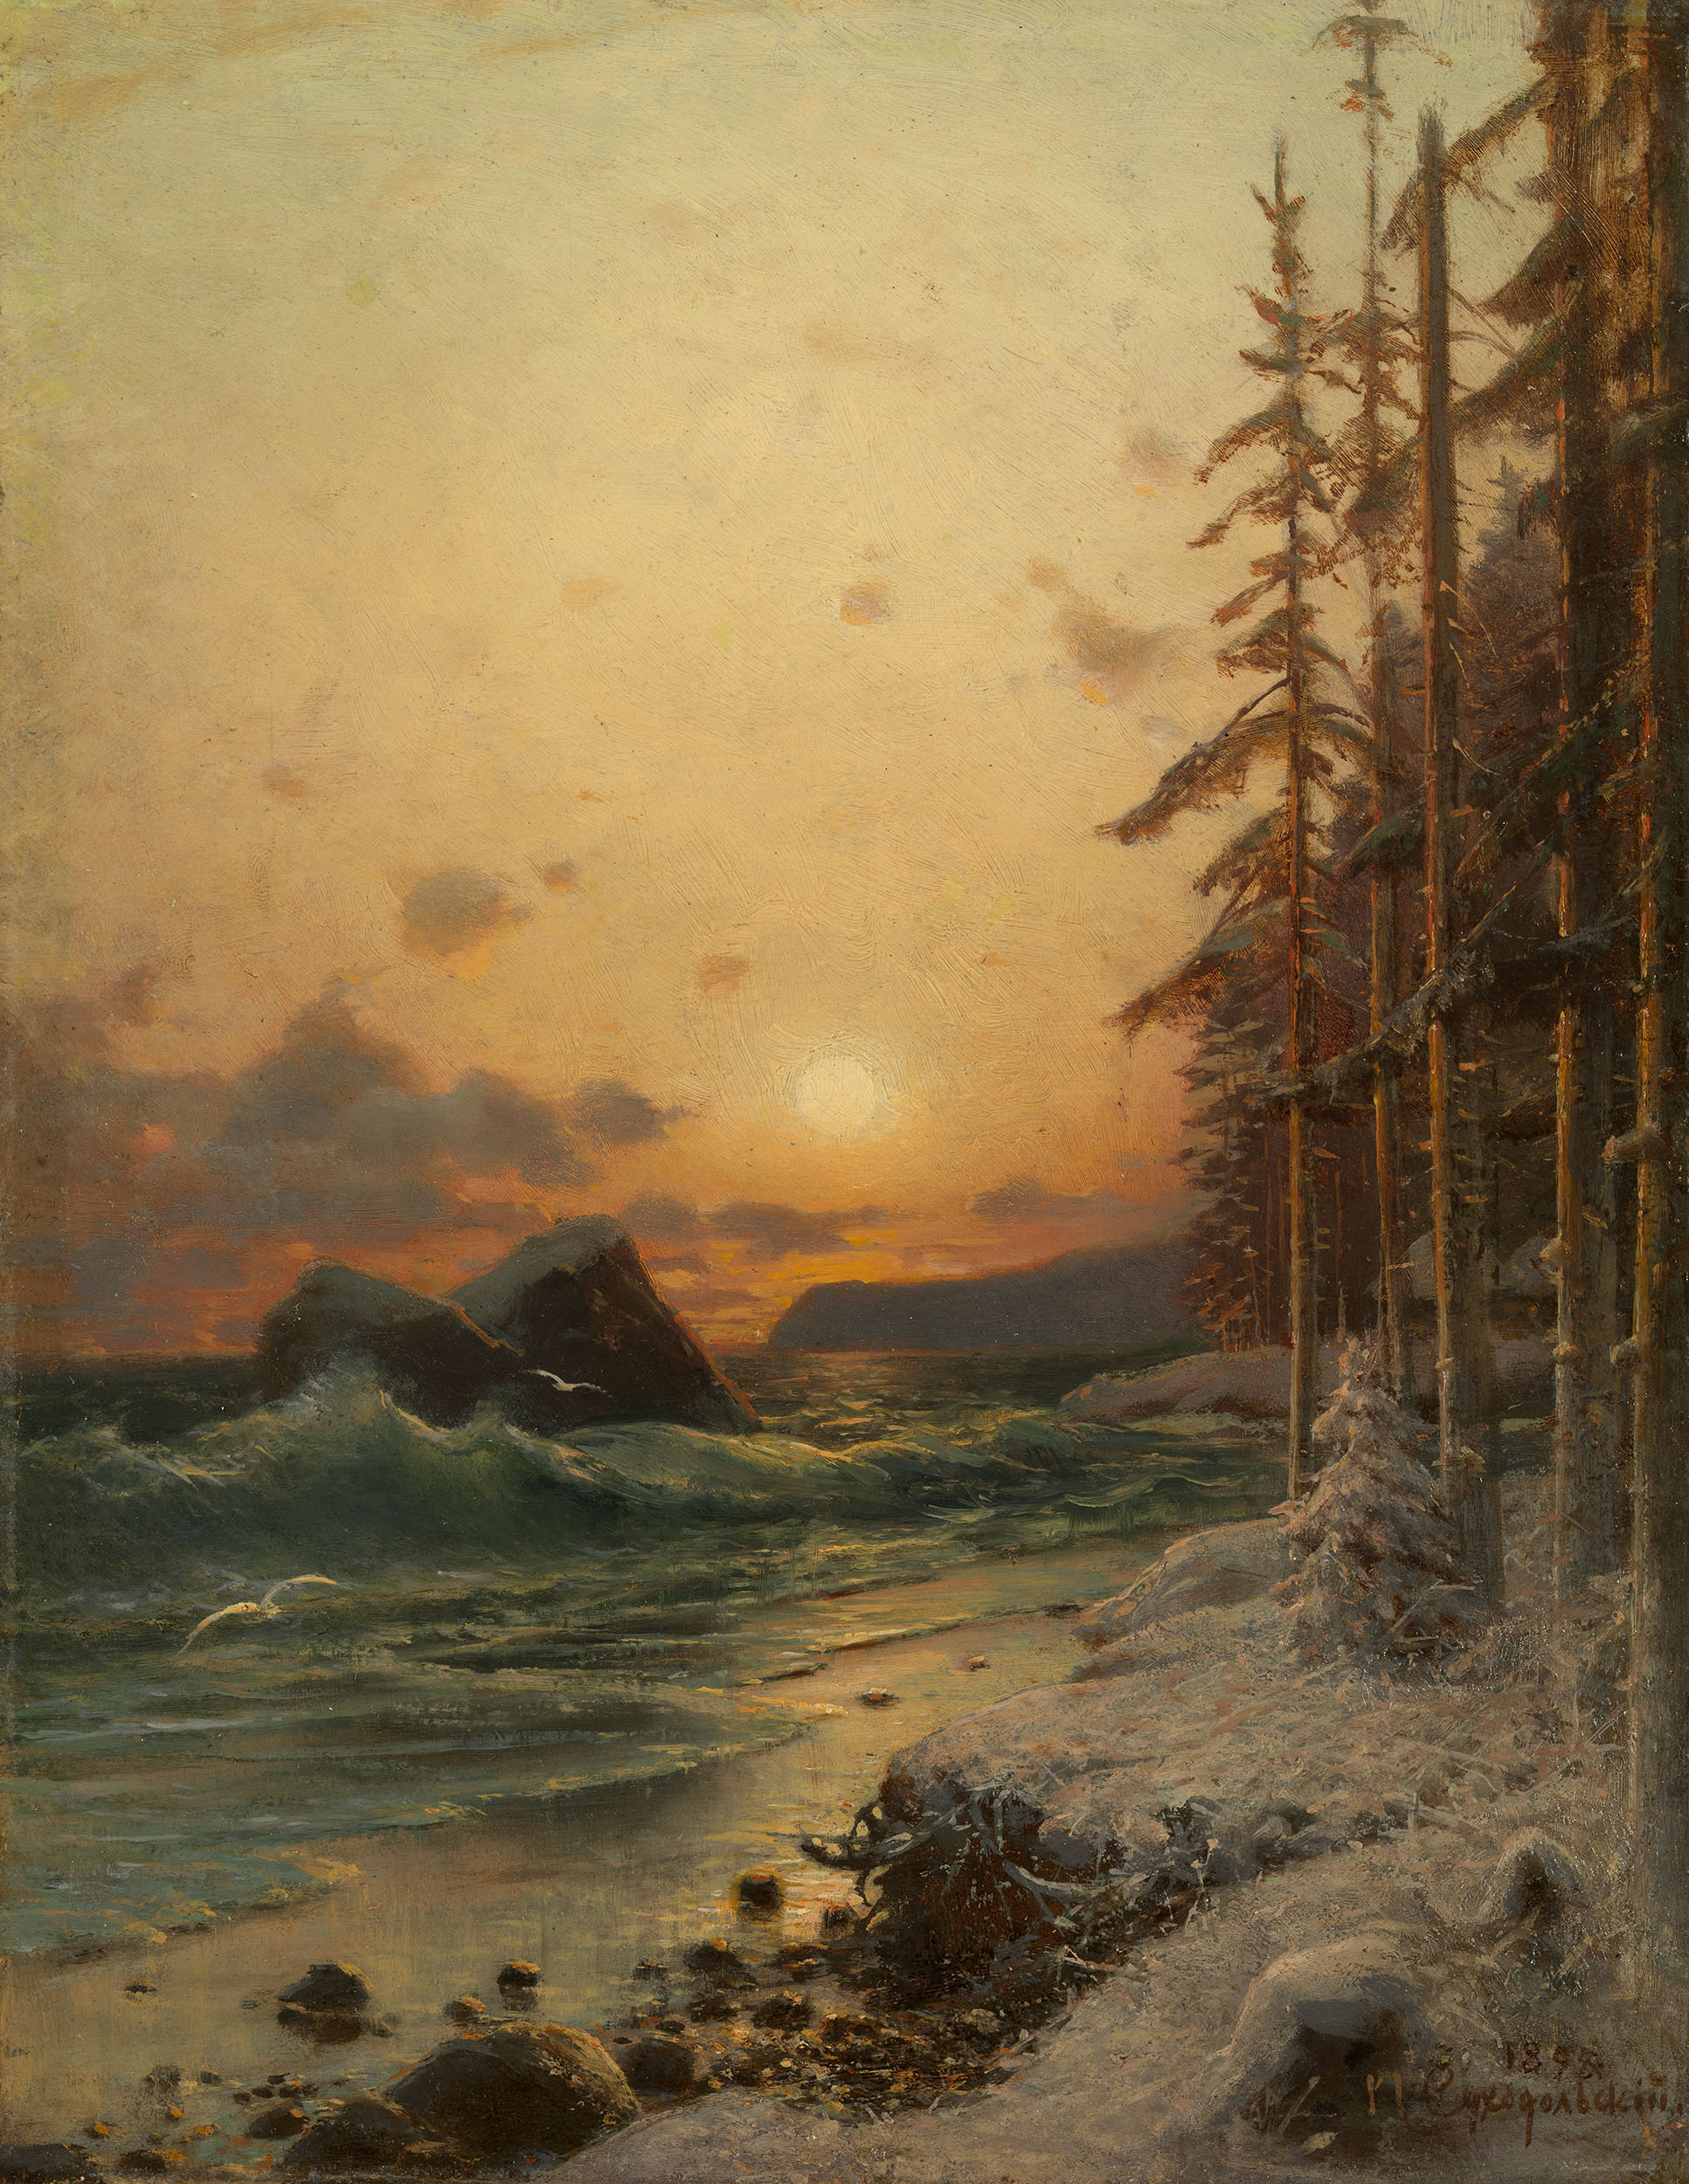 SUKHODOLSKY, PETR The Northern Coast in Winter